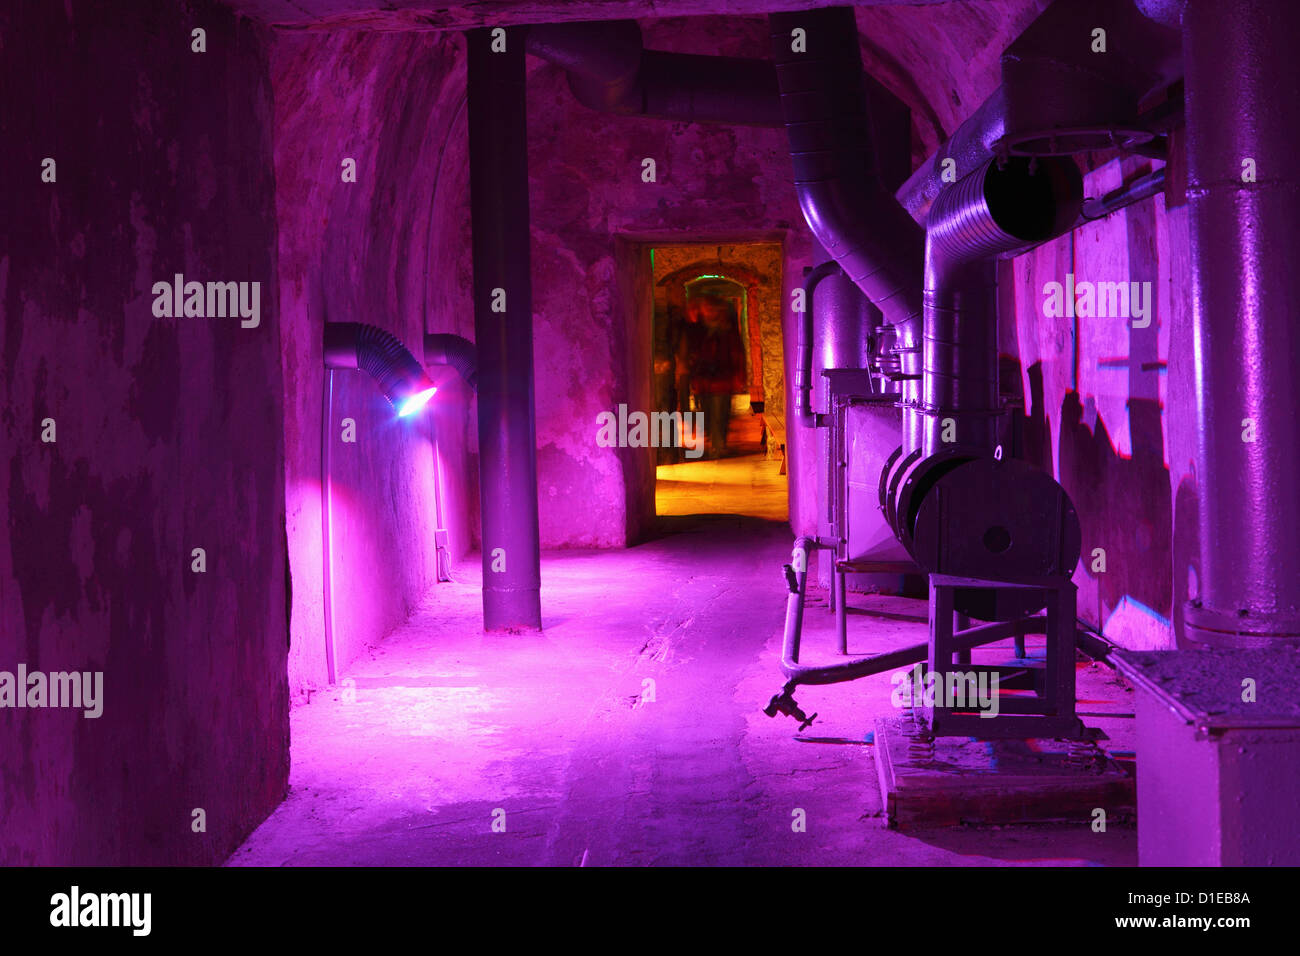 Cold War era display in the Bastion Passages, underground and once part of the defences of Tallinn, Estonia, Europe - Stock Image